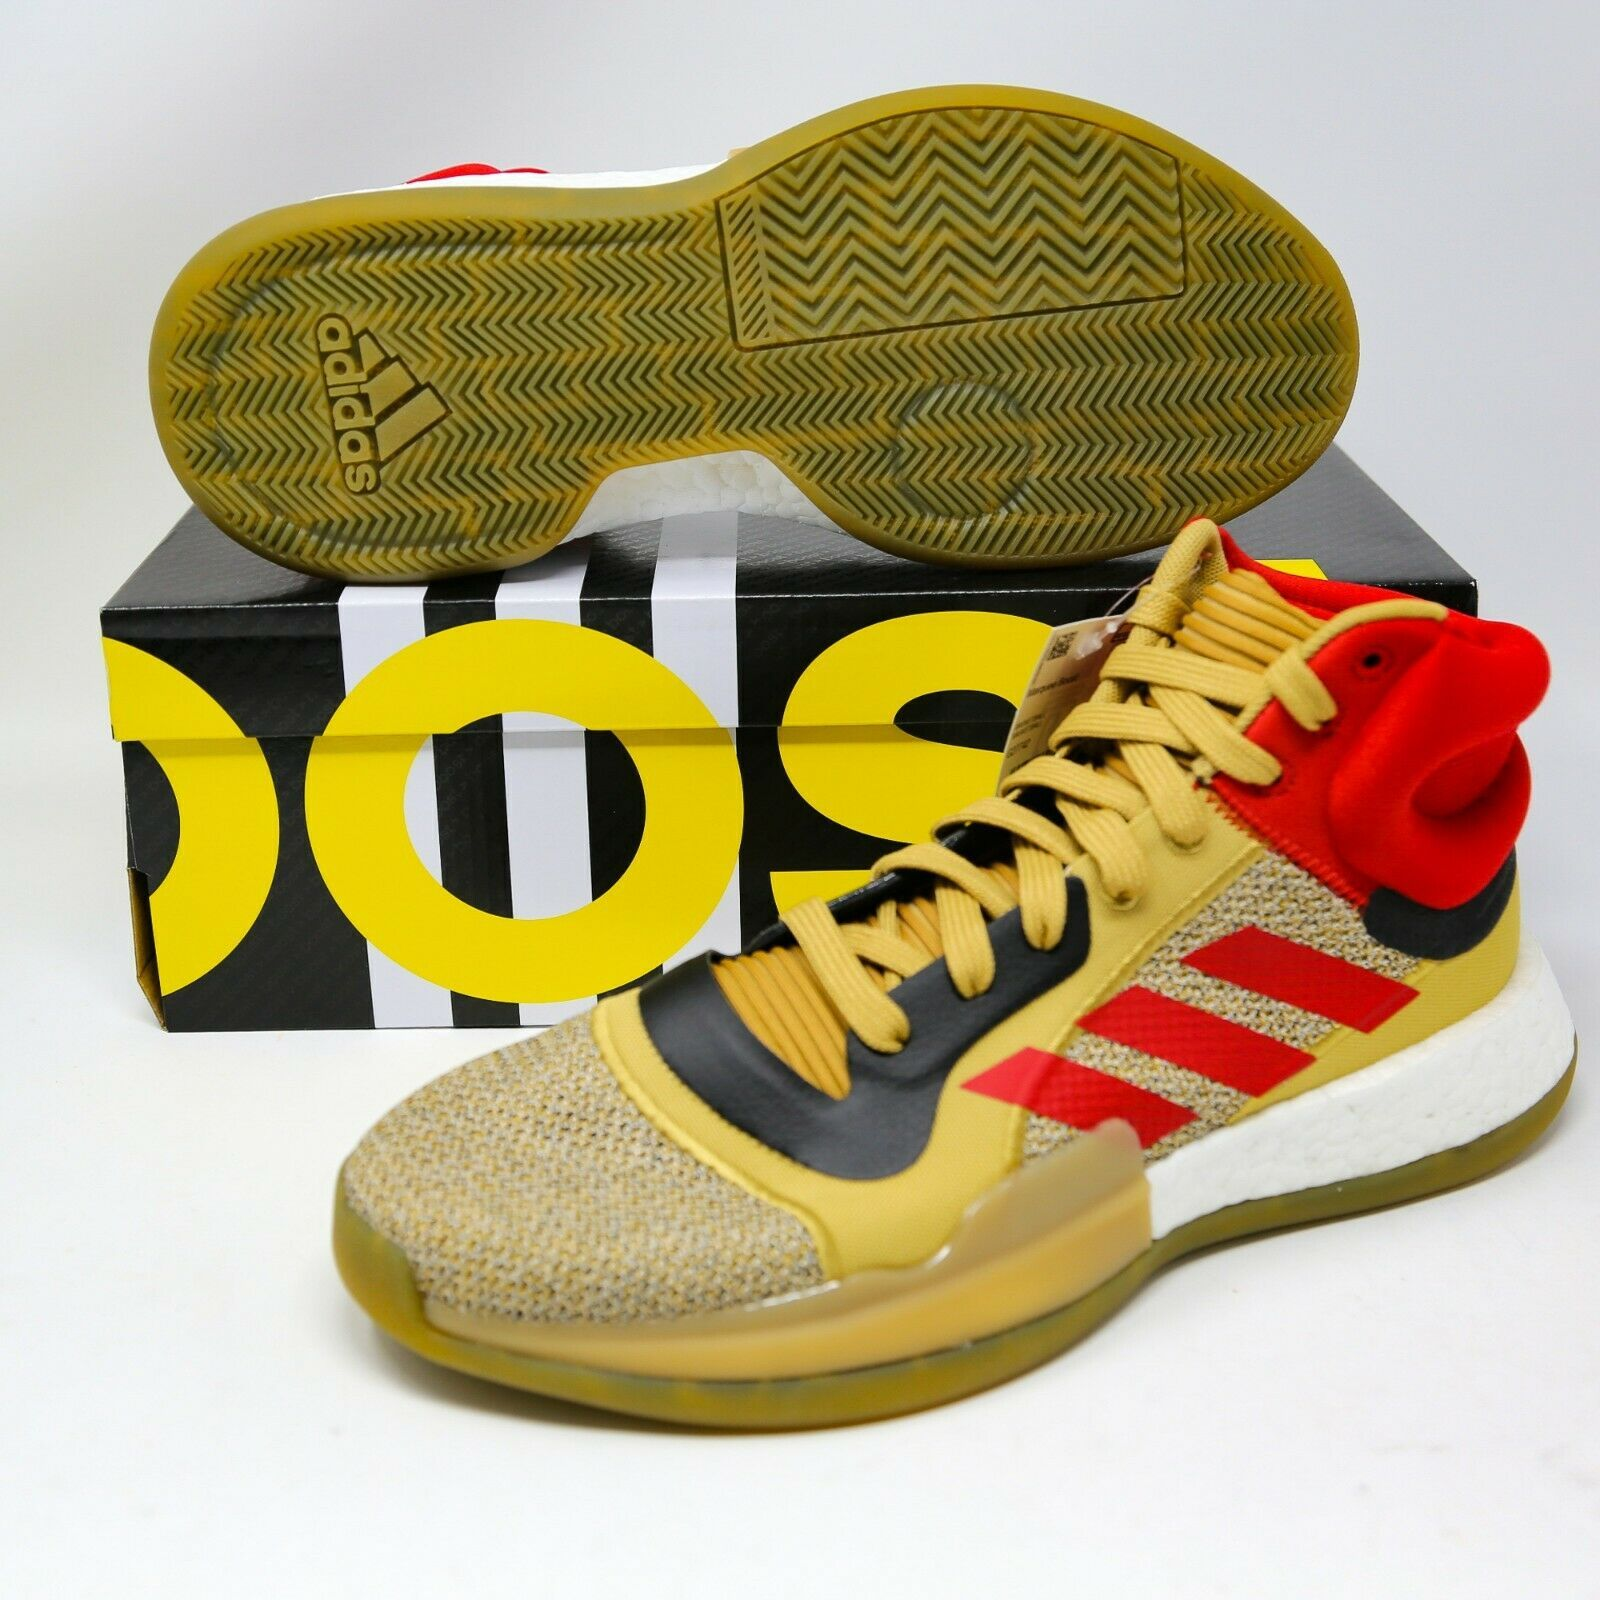 Primary image for adidas Marquee Boost Beige Gold Scarlet Red G27742 size 9.5 EUR 43,5 Basketball